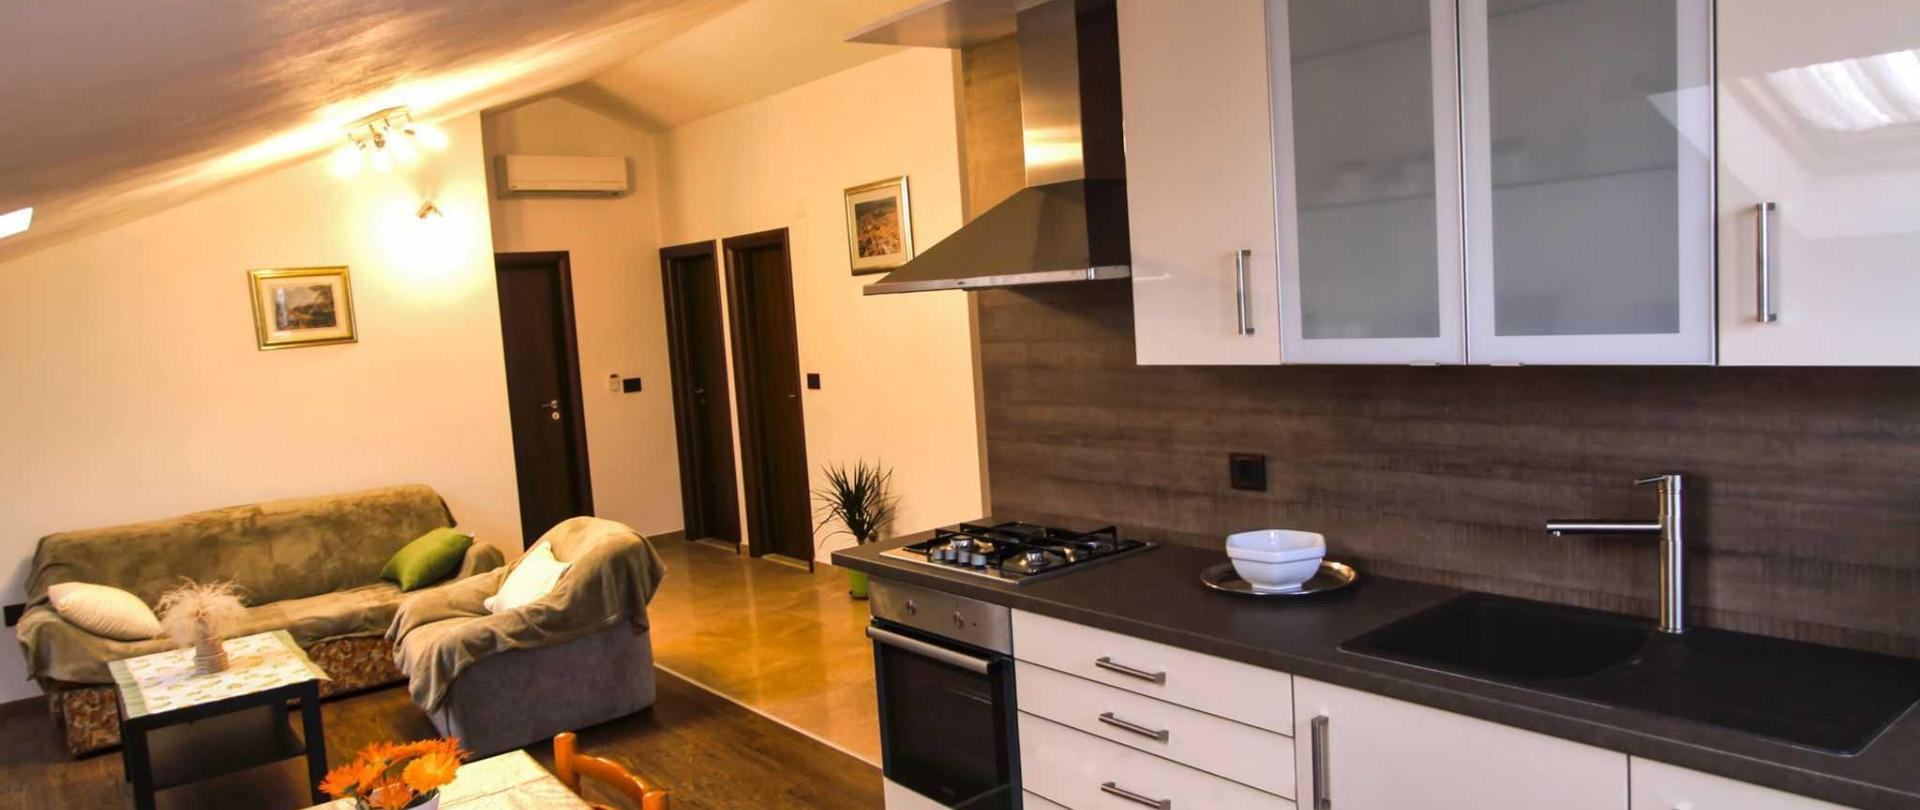 4_living_room_and_kitchen.jpg